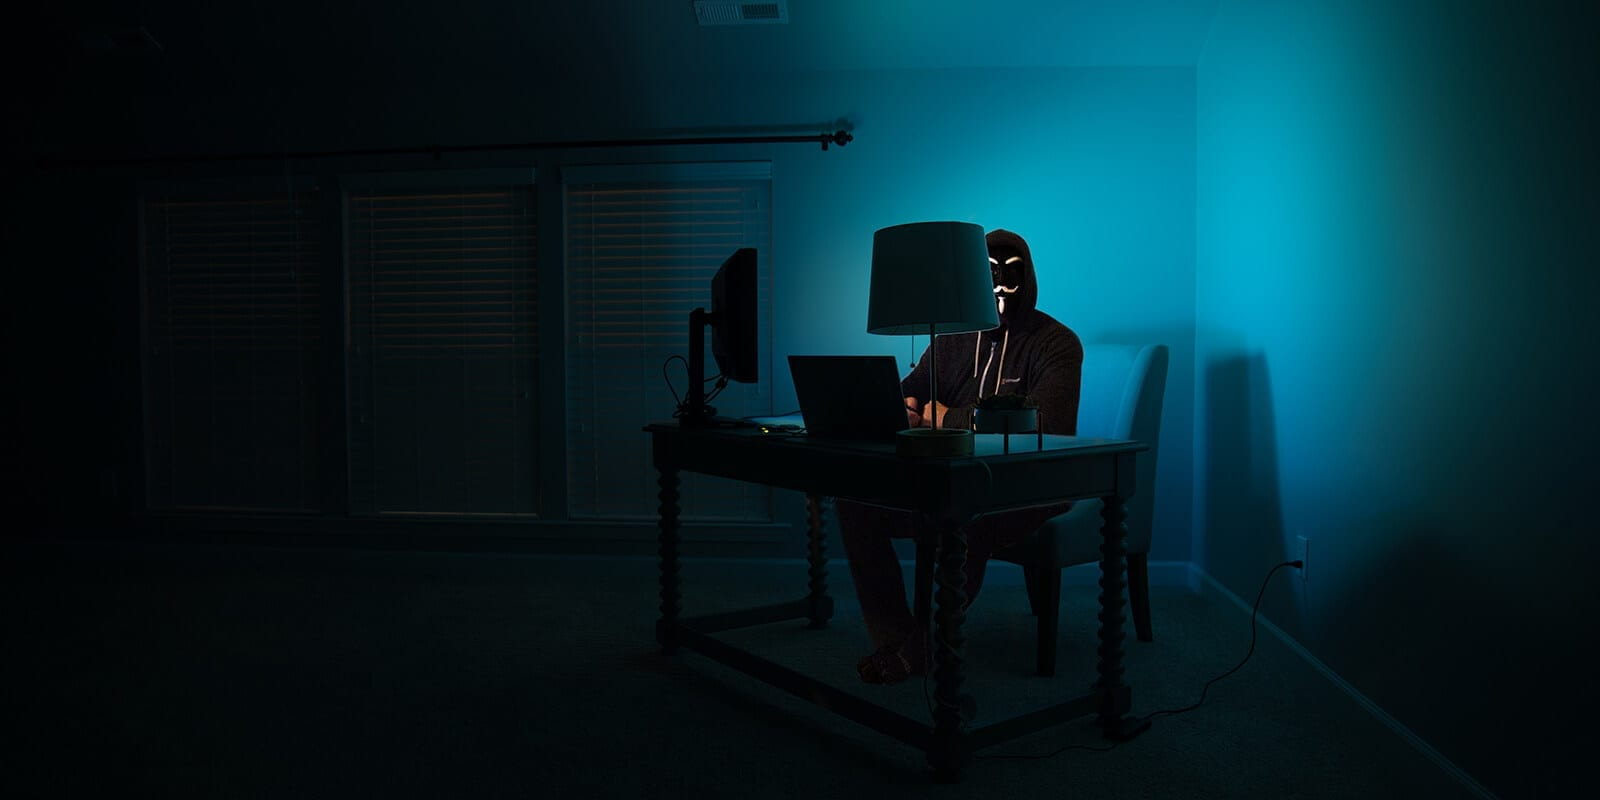 Man in the dark on computer - Password hacking